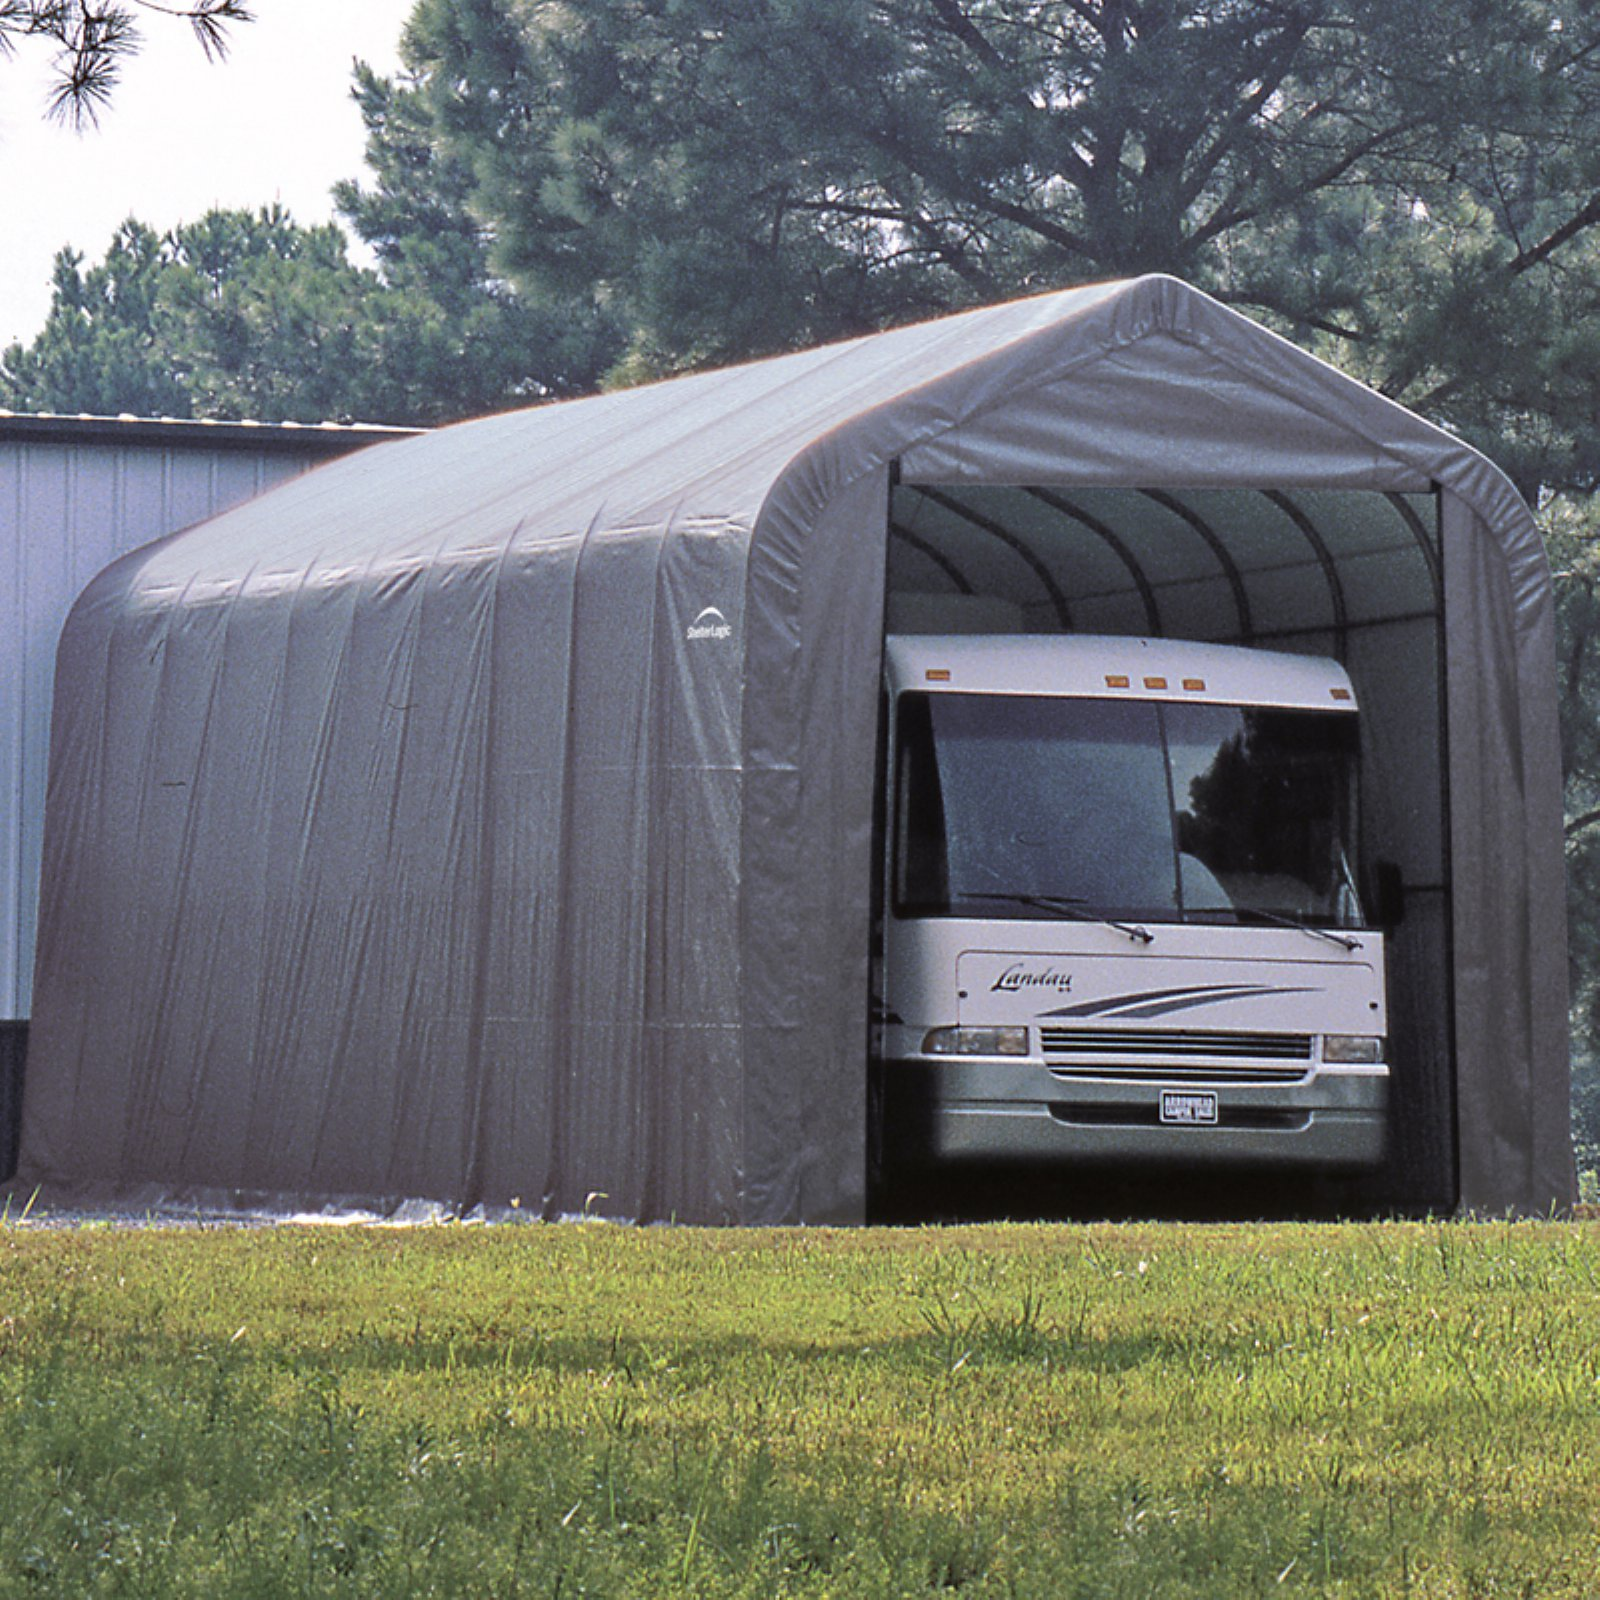 ShelterLogic 15' x 24' x 12' Peak Style Shelter, Green